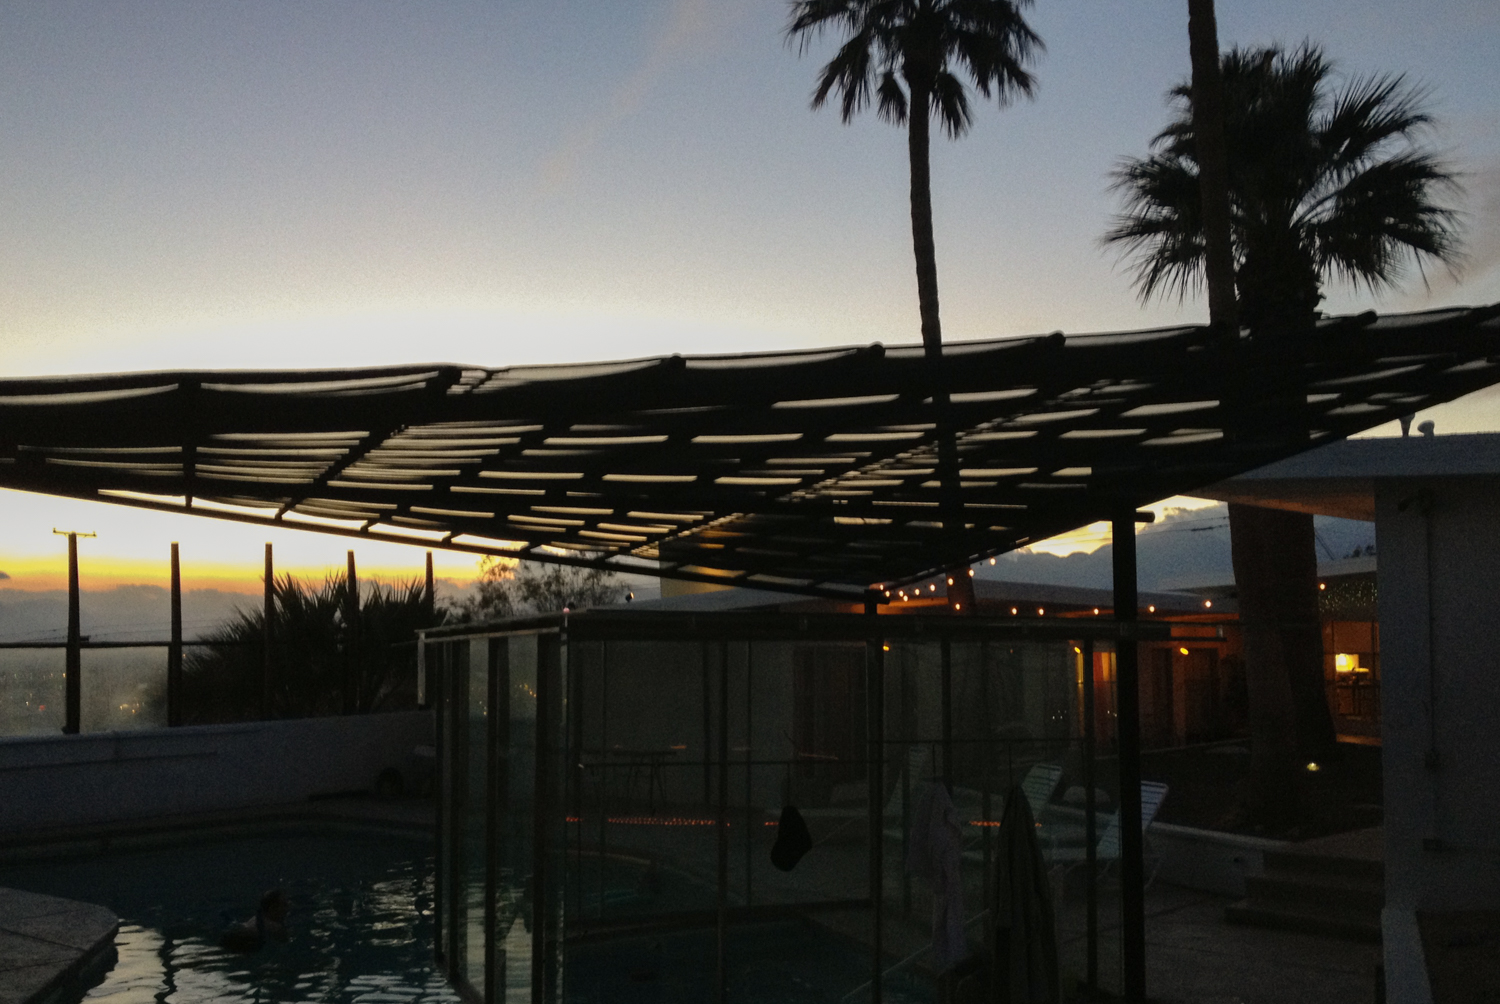 The pool is open 24/7 - there's nothing like a night time swim under the stars.